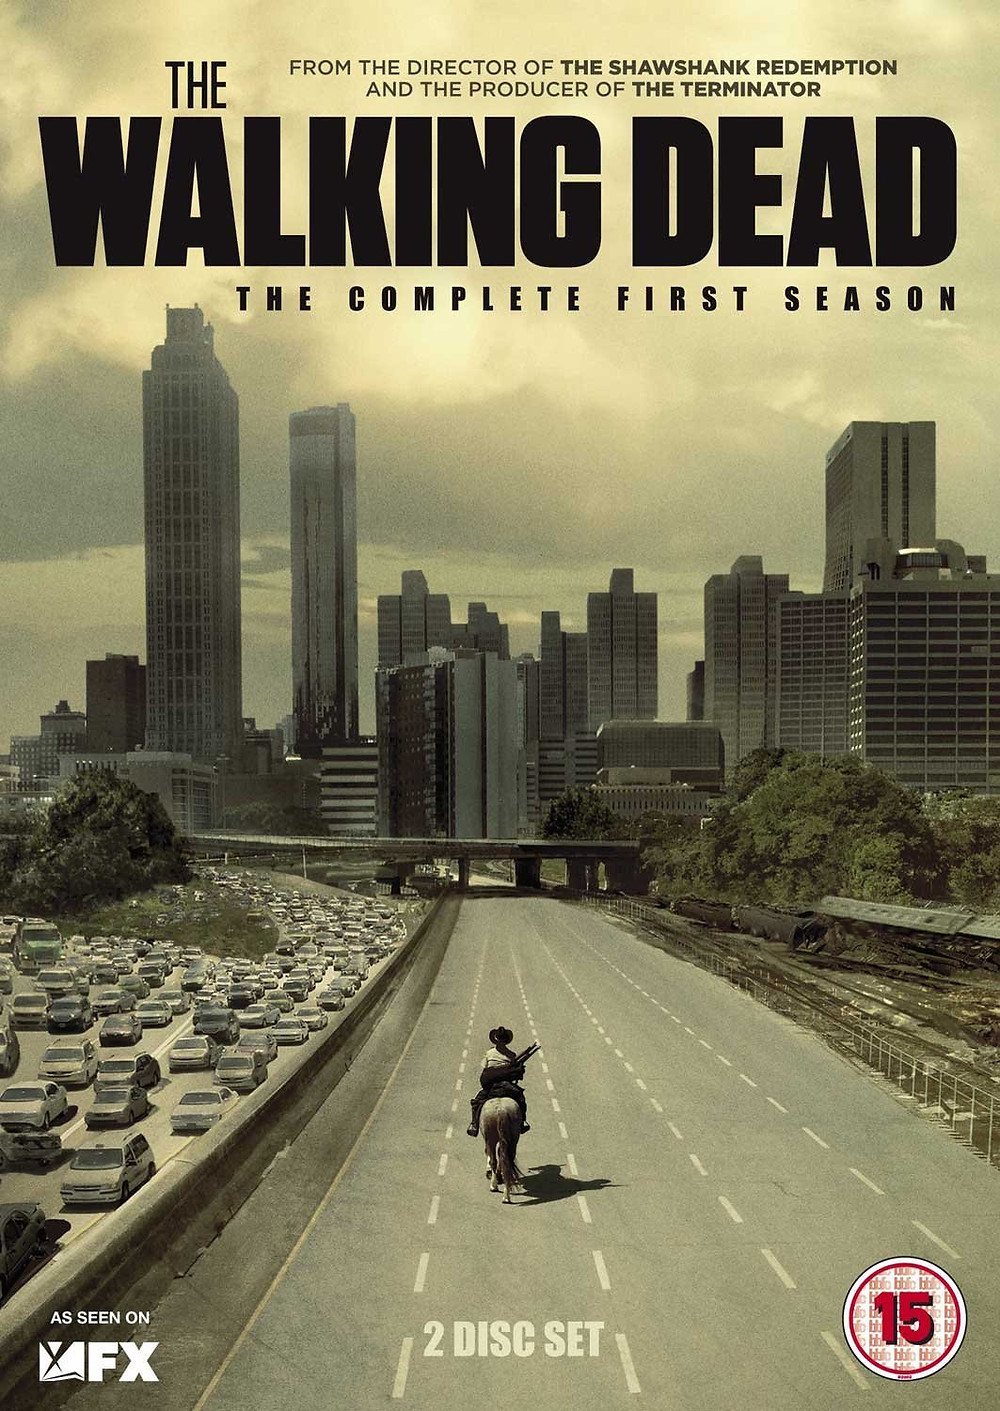 Cover of the Walking Dead season one DVD set